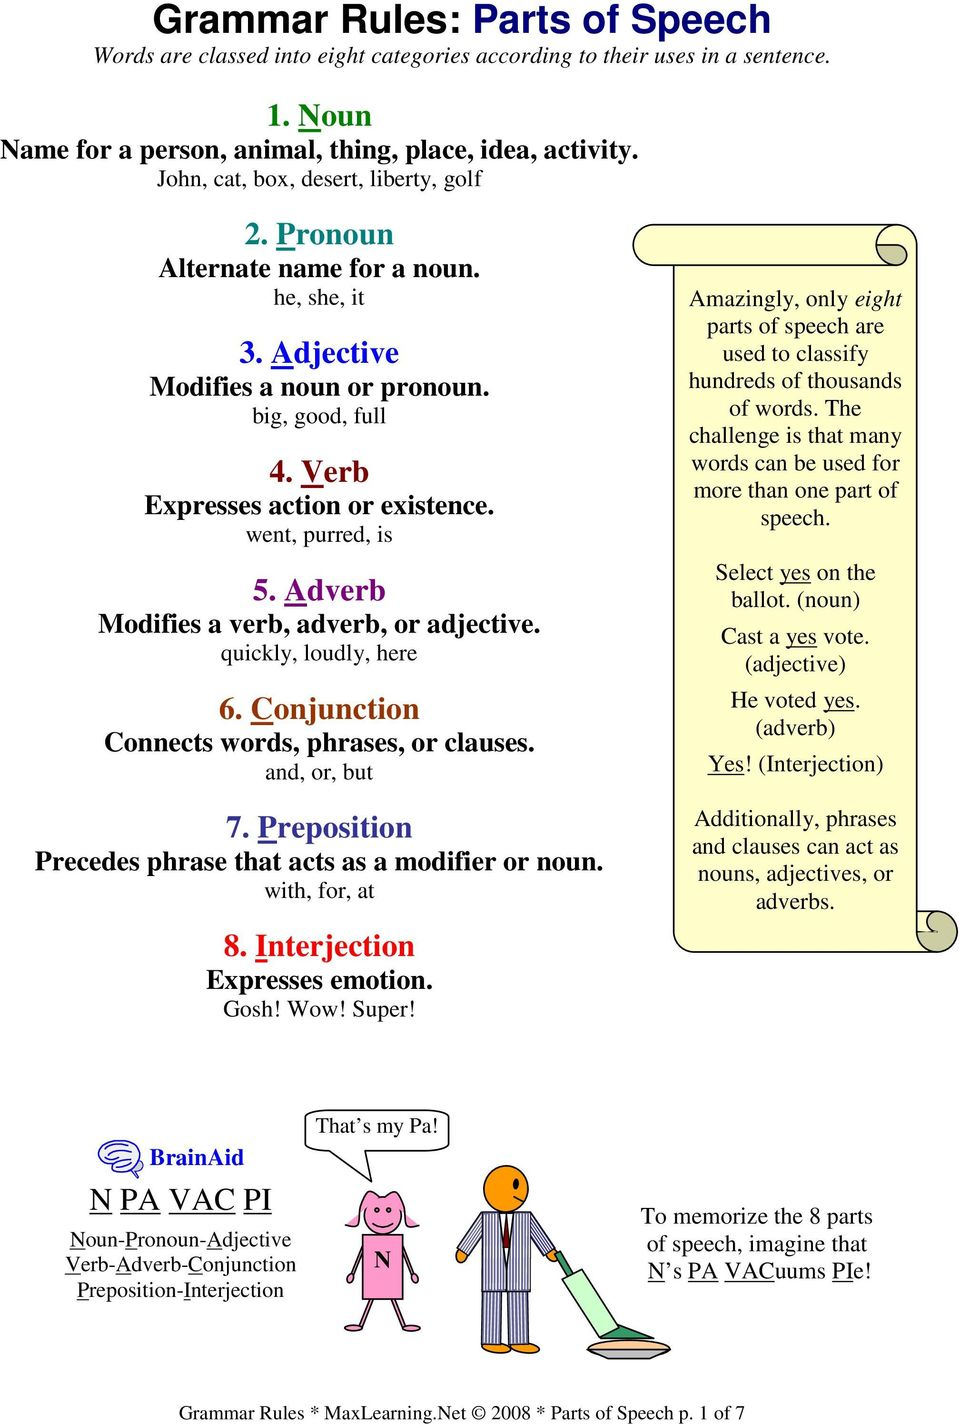 What is the difference between an adverb and other parts of speech. Ranks and main features